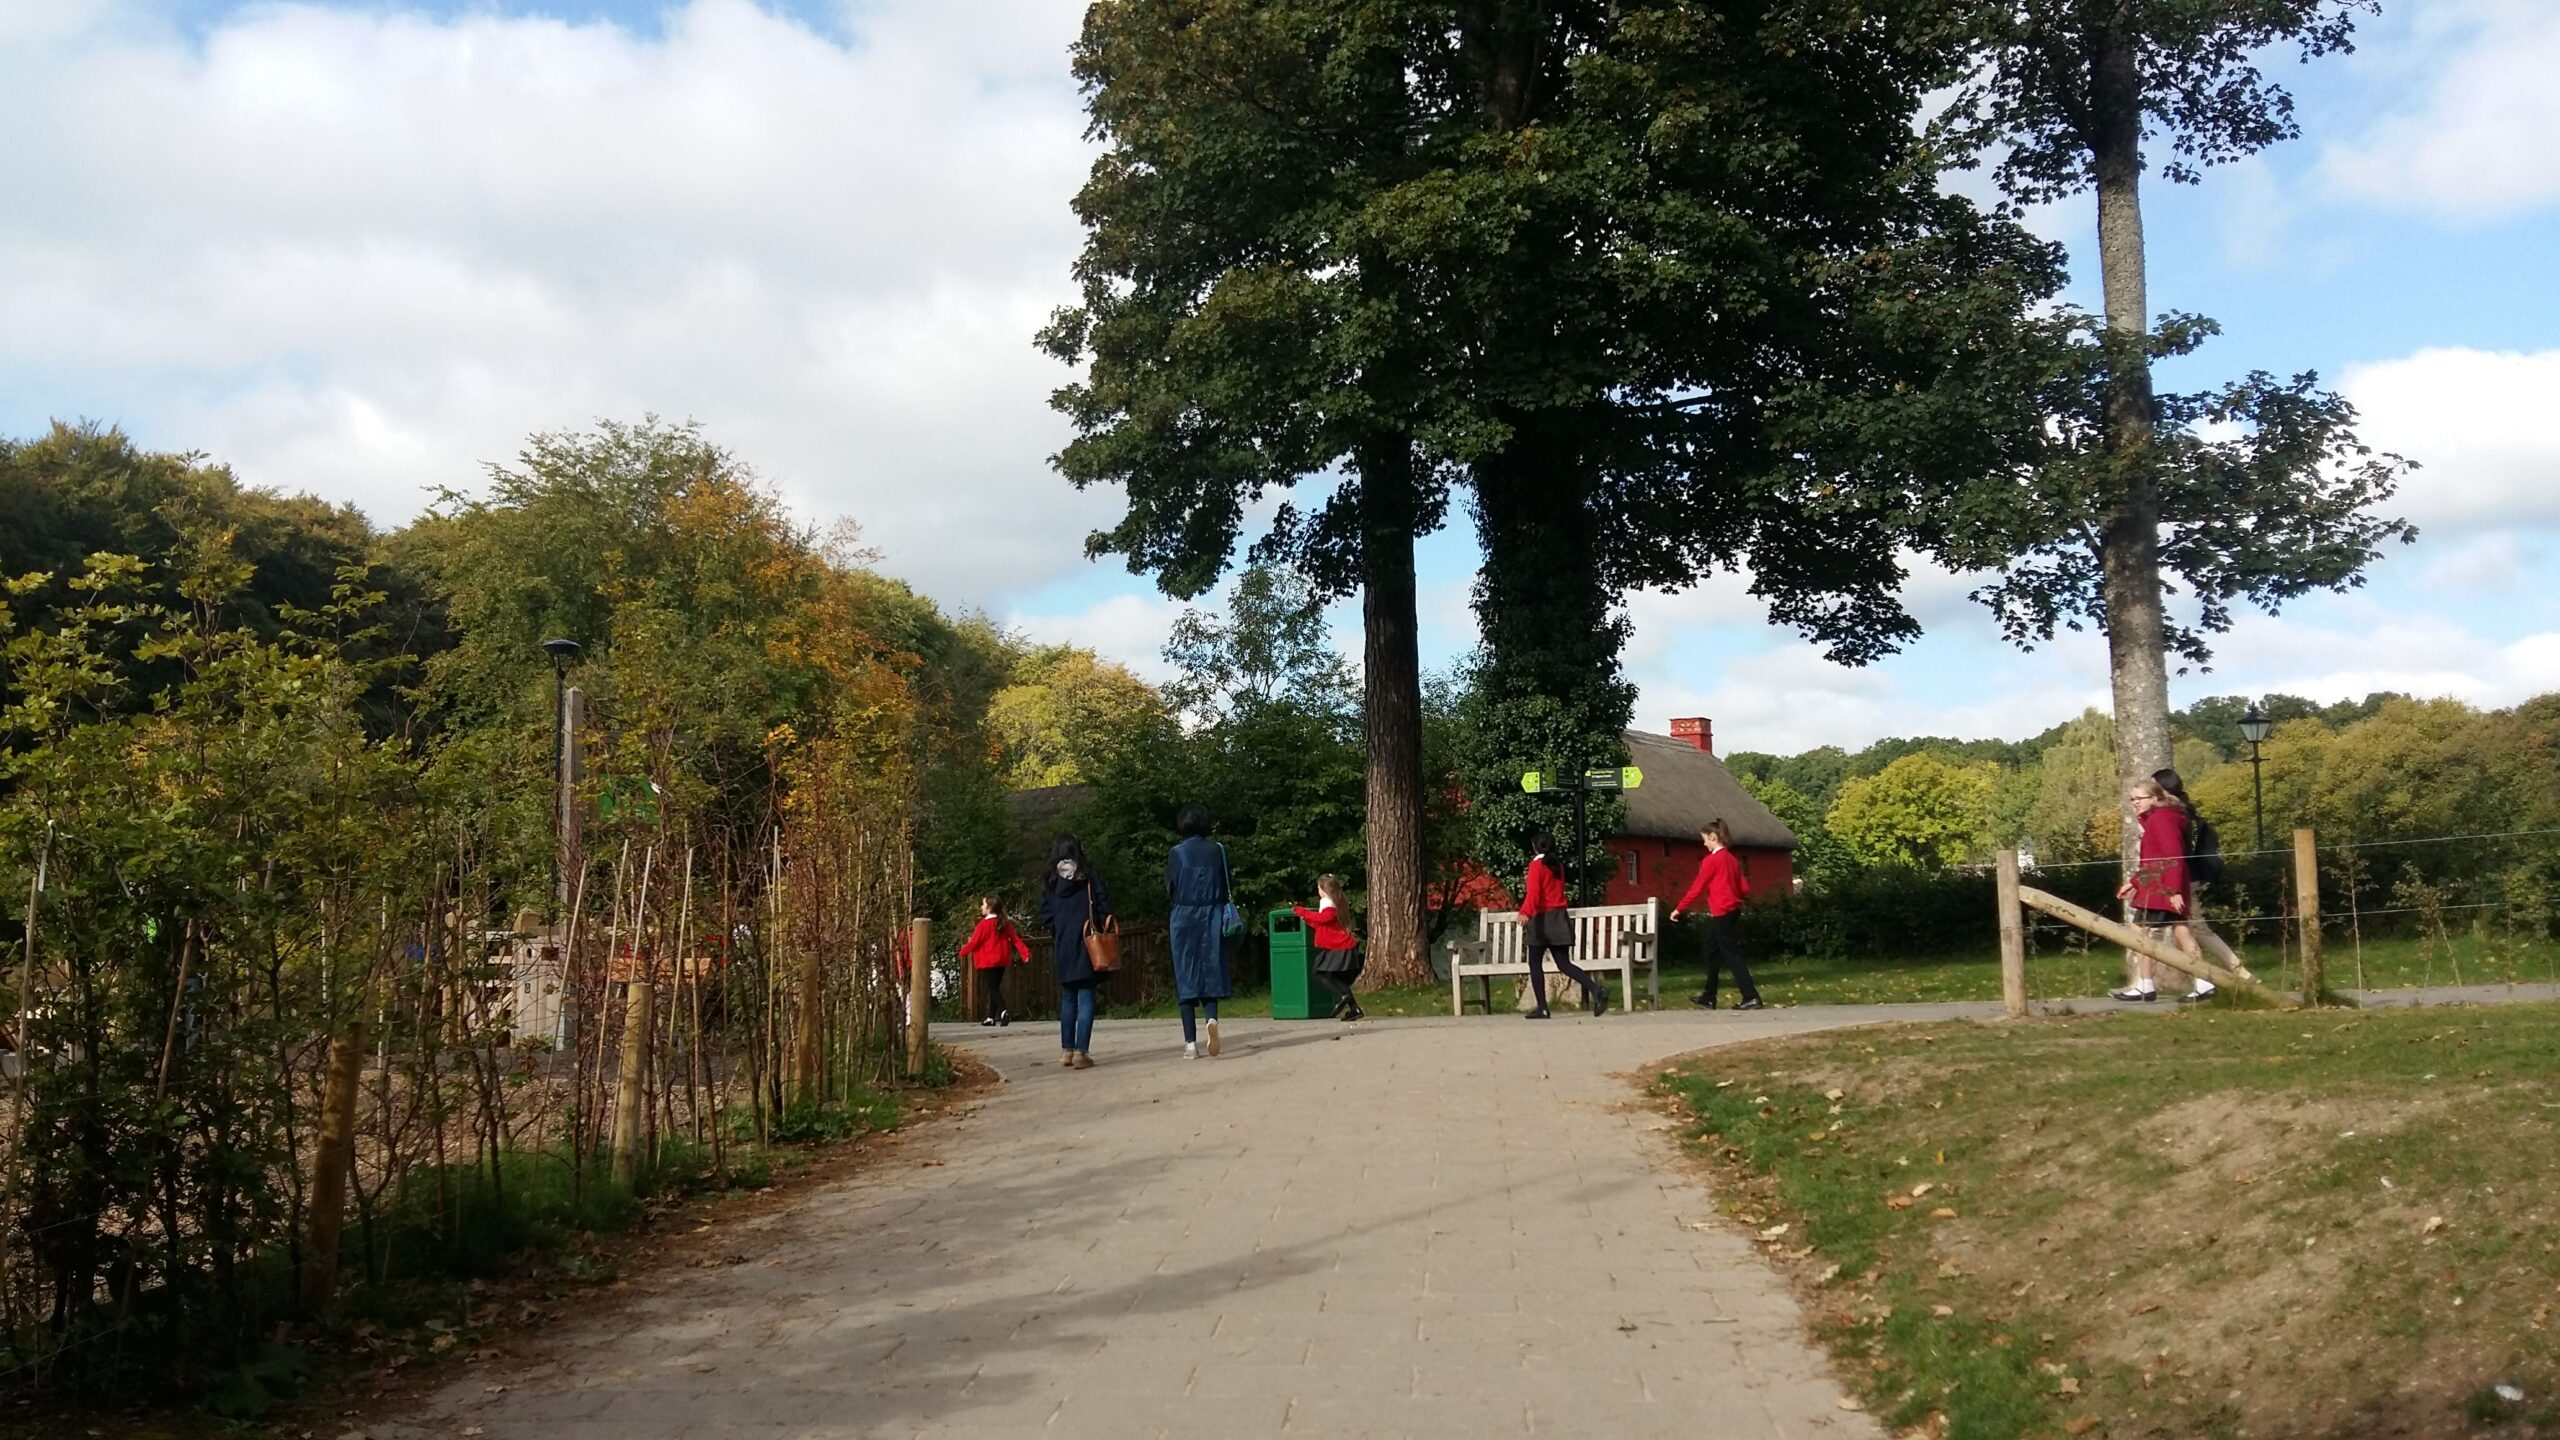 Students walking at the outdoor trails of the St Fagans National Museum